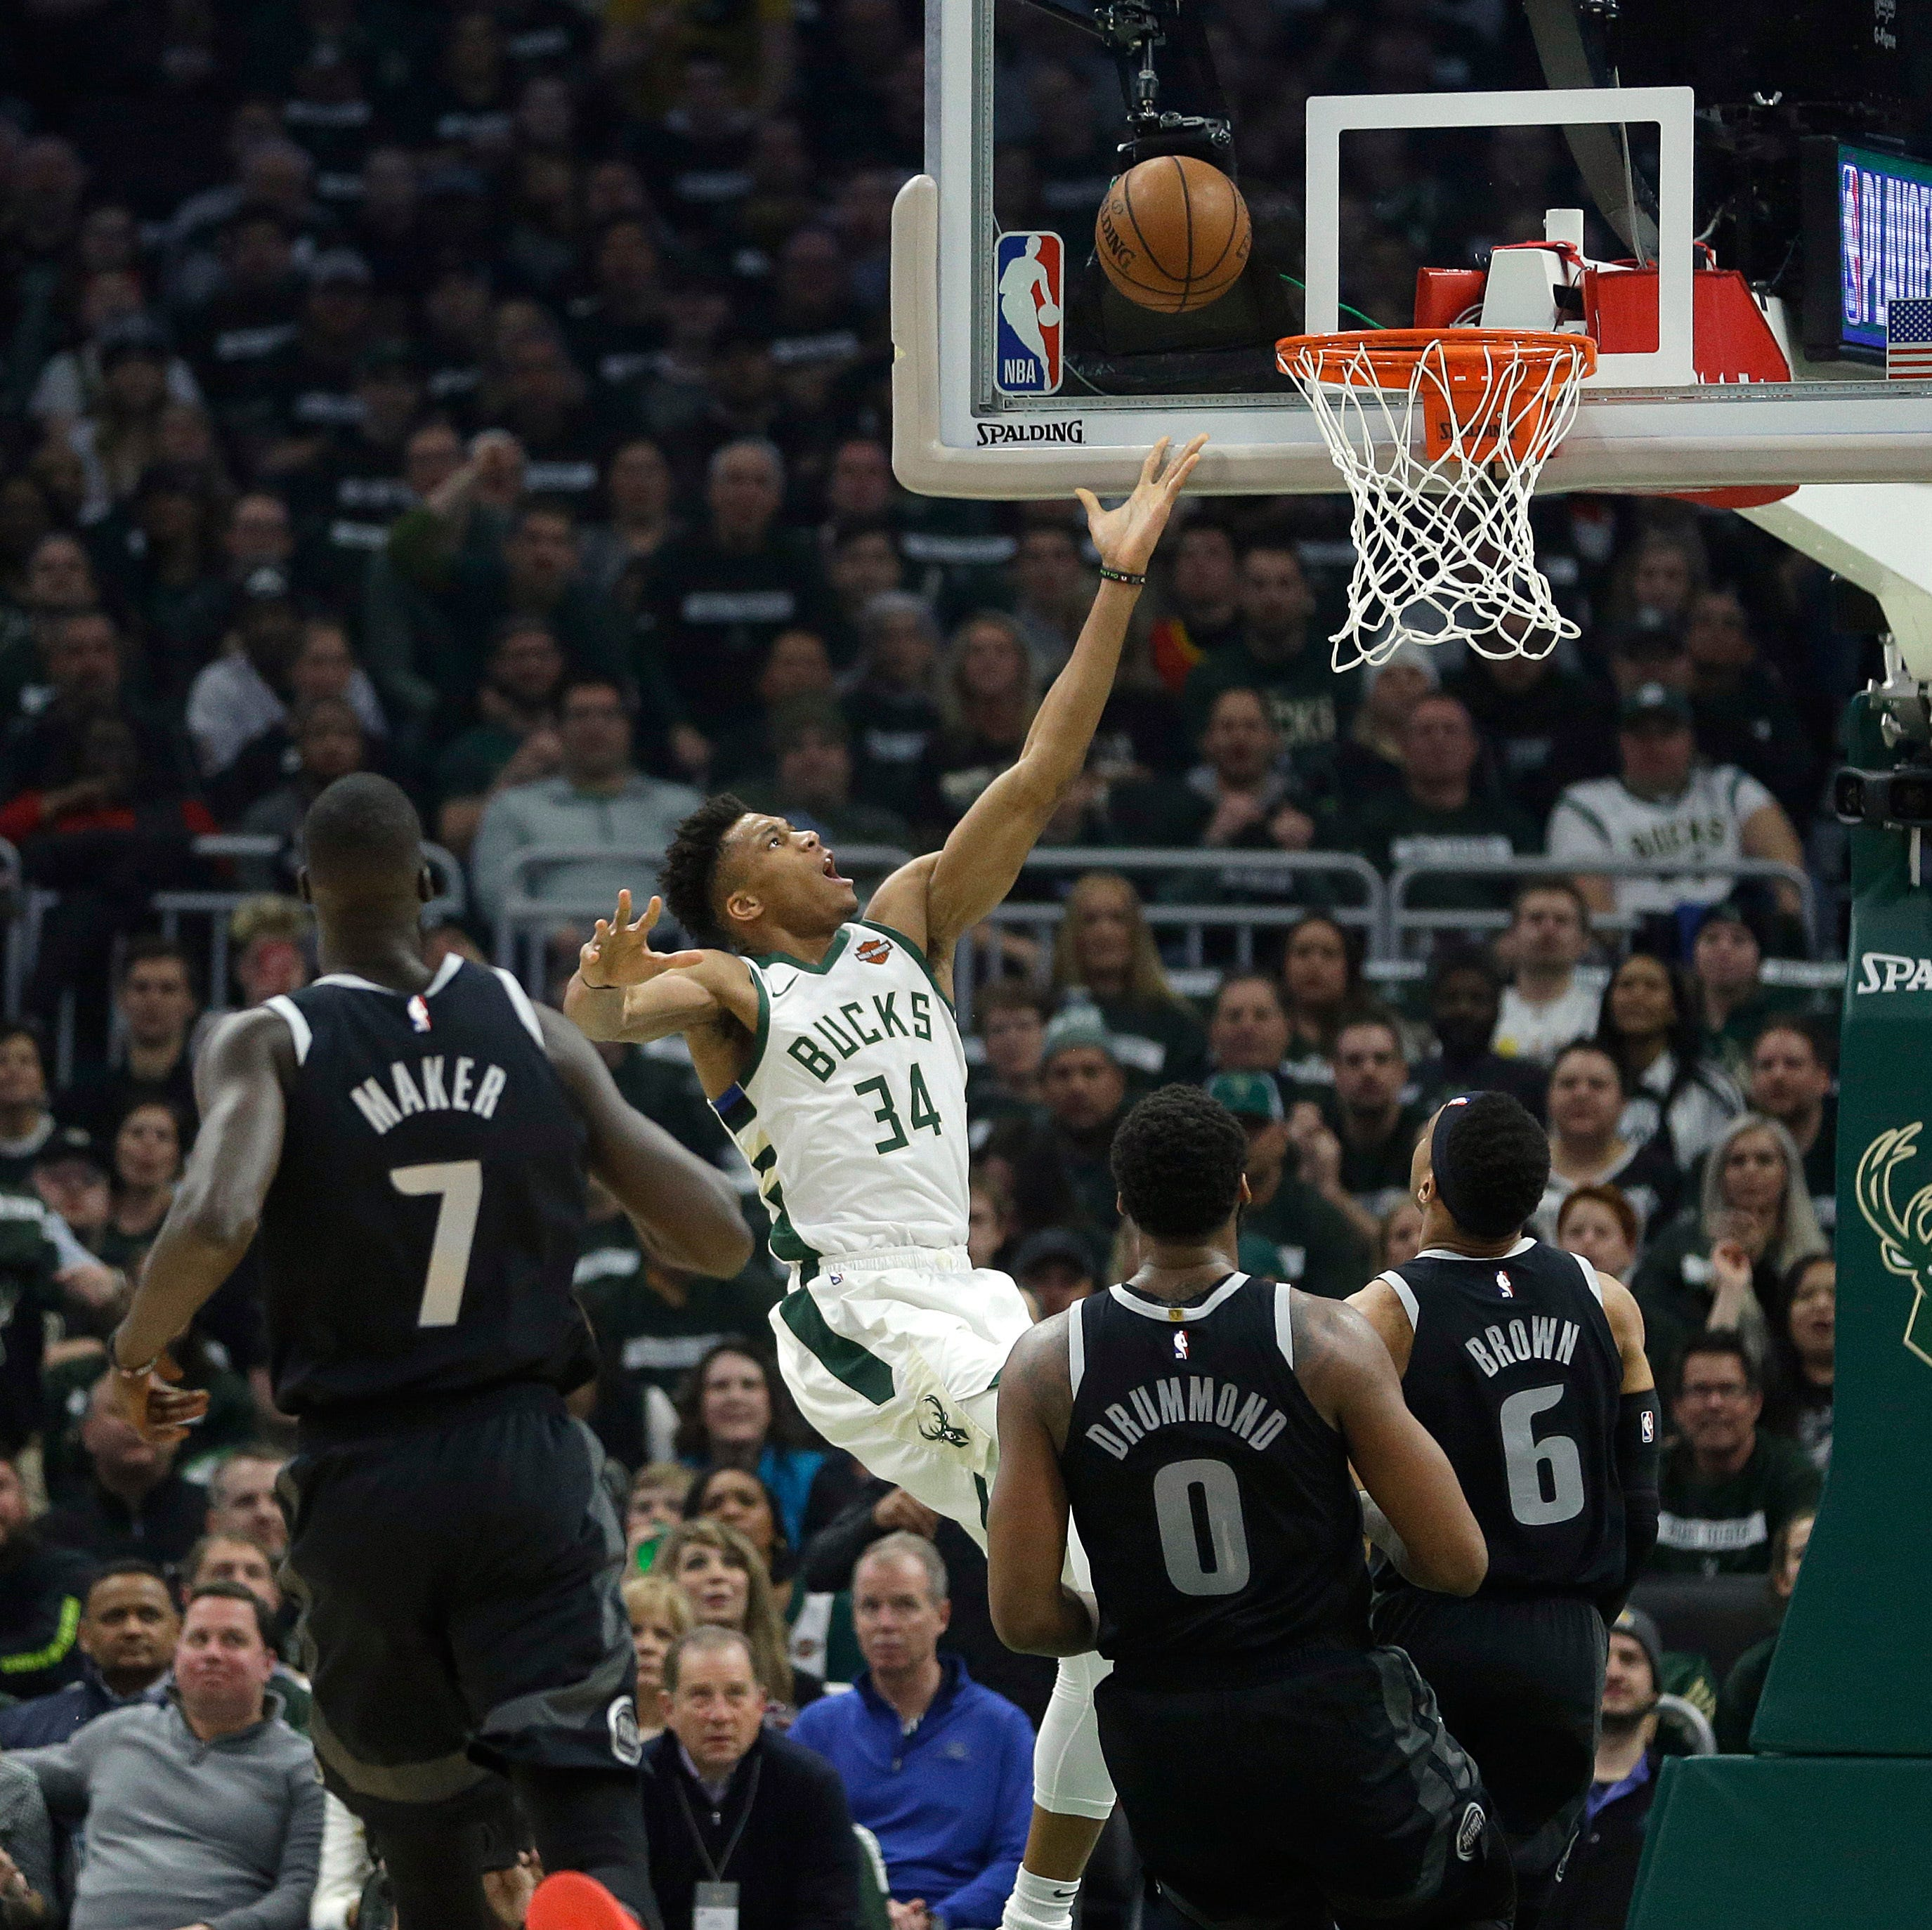 Milwaukee mauling: Bucks run over Pistons in Game 1